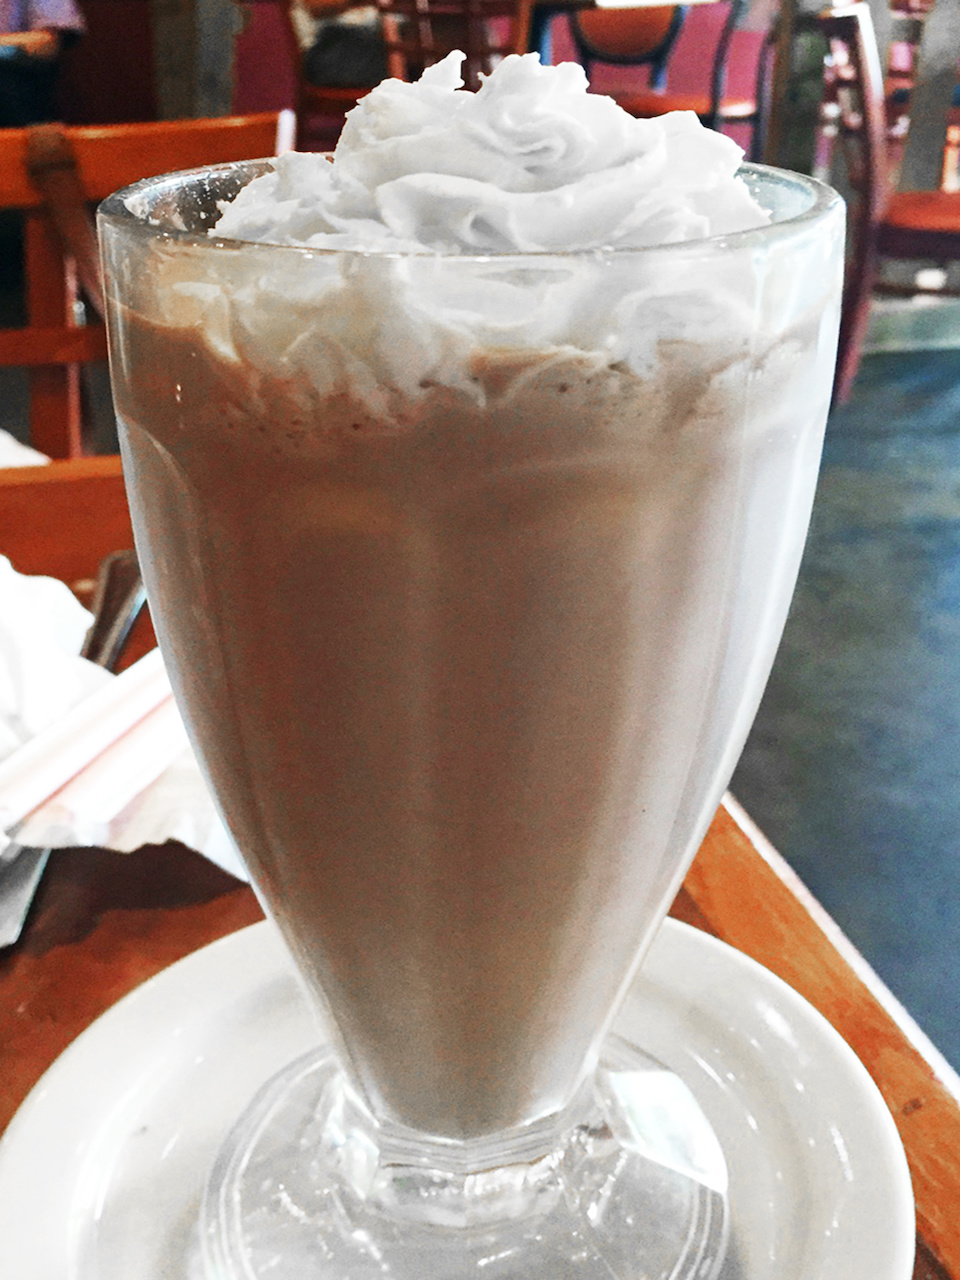 The peanut butter and chocolate shake at Cafe Eclectic is a favorite.